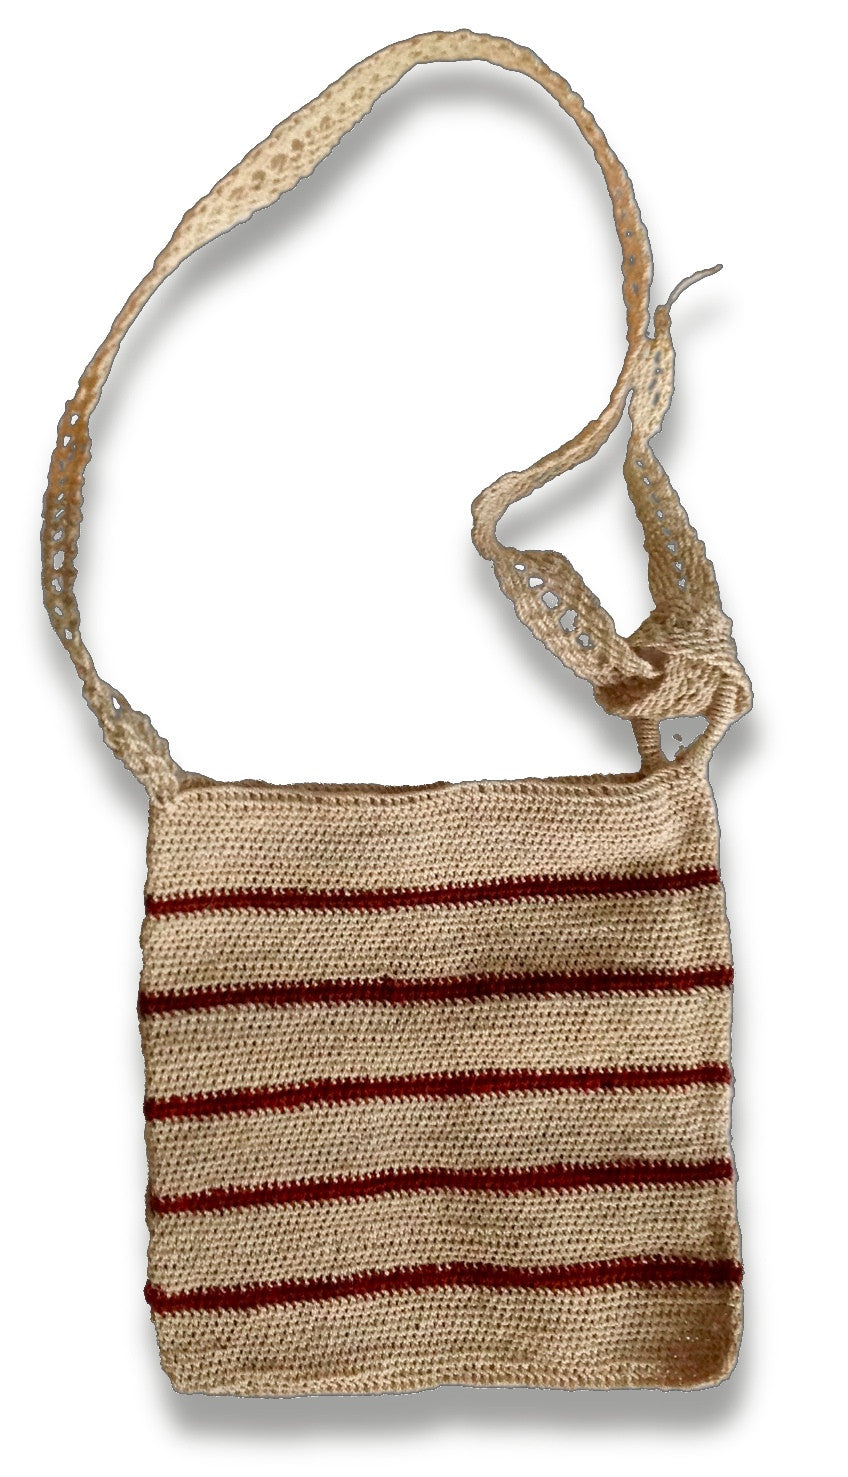 Agave fiber shoulder bag.  Hand spun and handwoven Guatemalan Textile.  Natural with maroon stripes